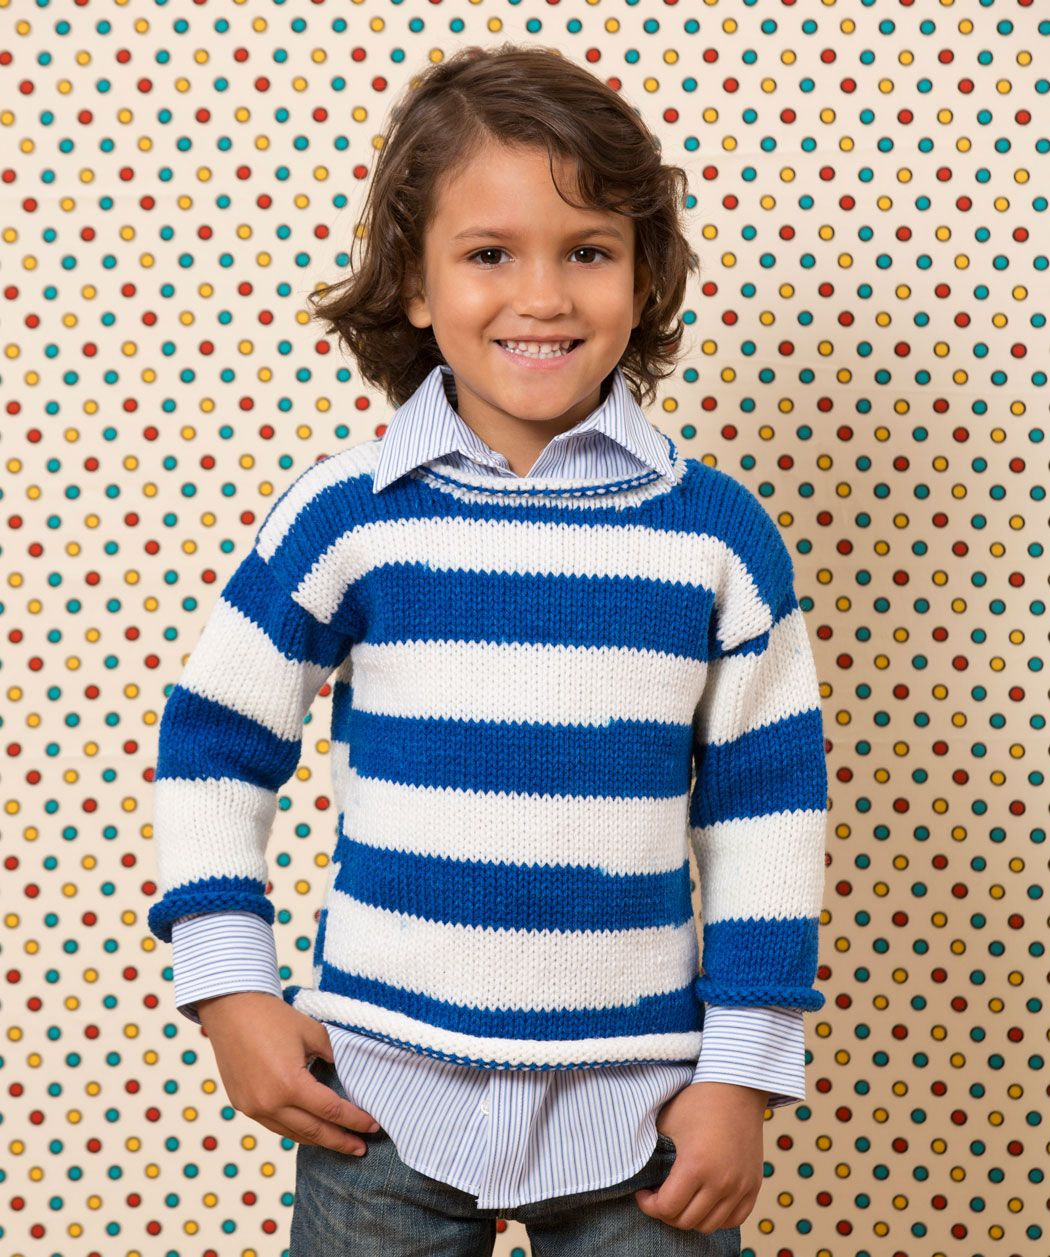 Game Day Knit Sweater Free Pattern from Red Heart Yarns | Knitting ...